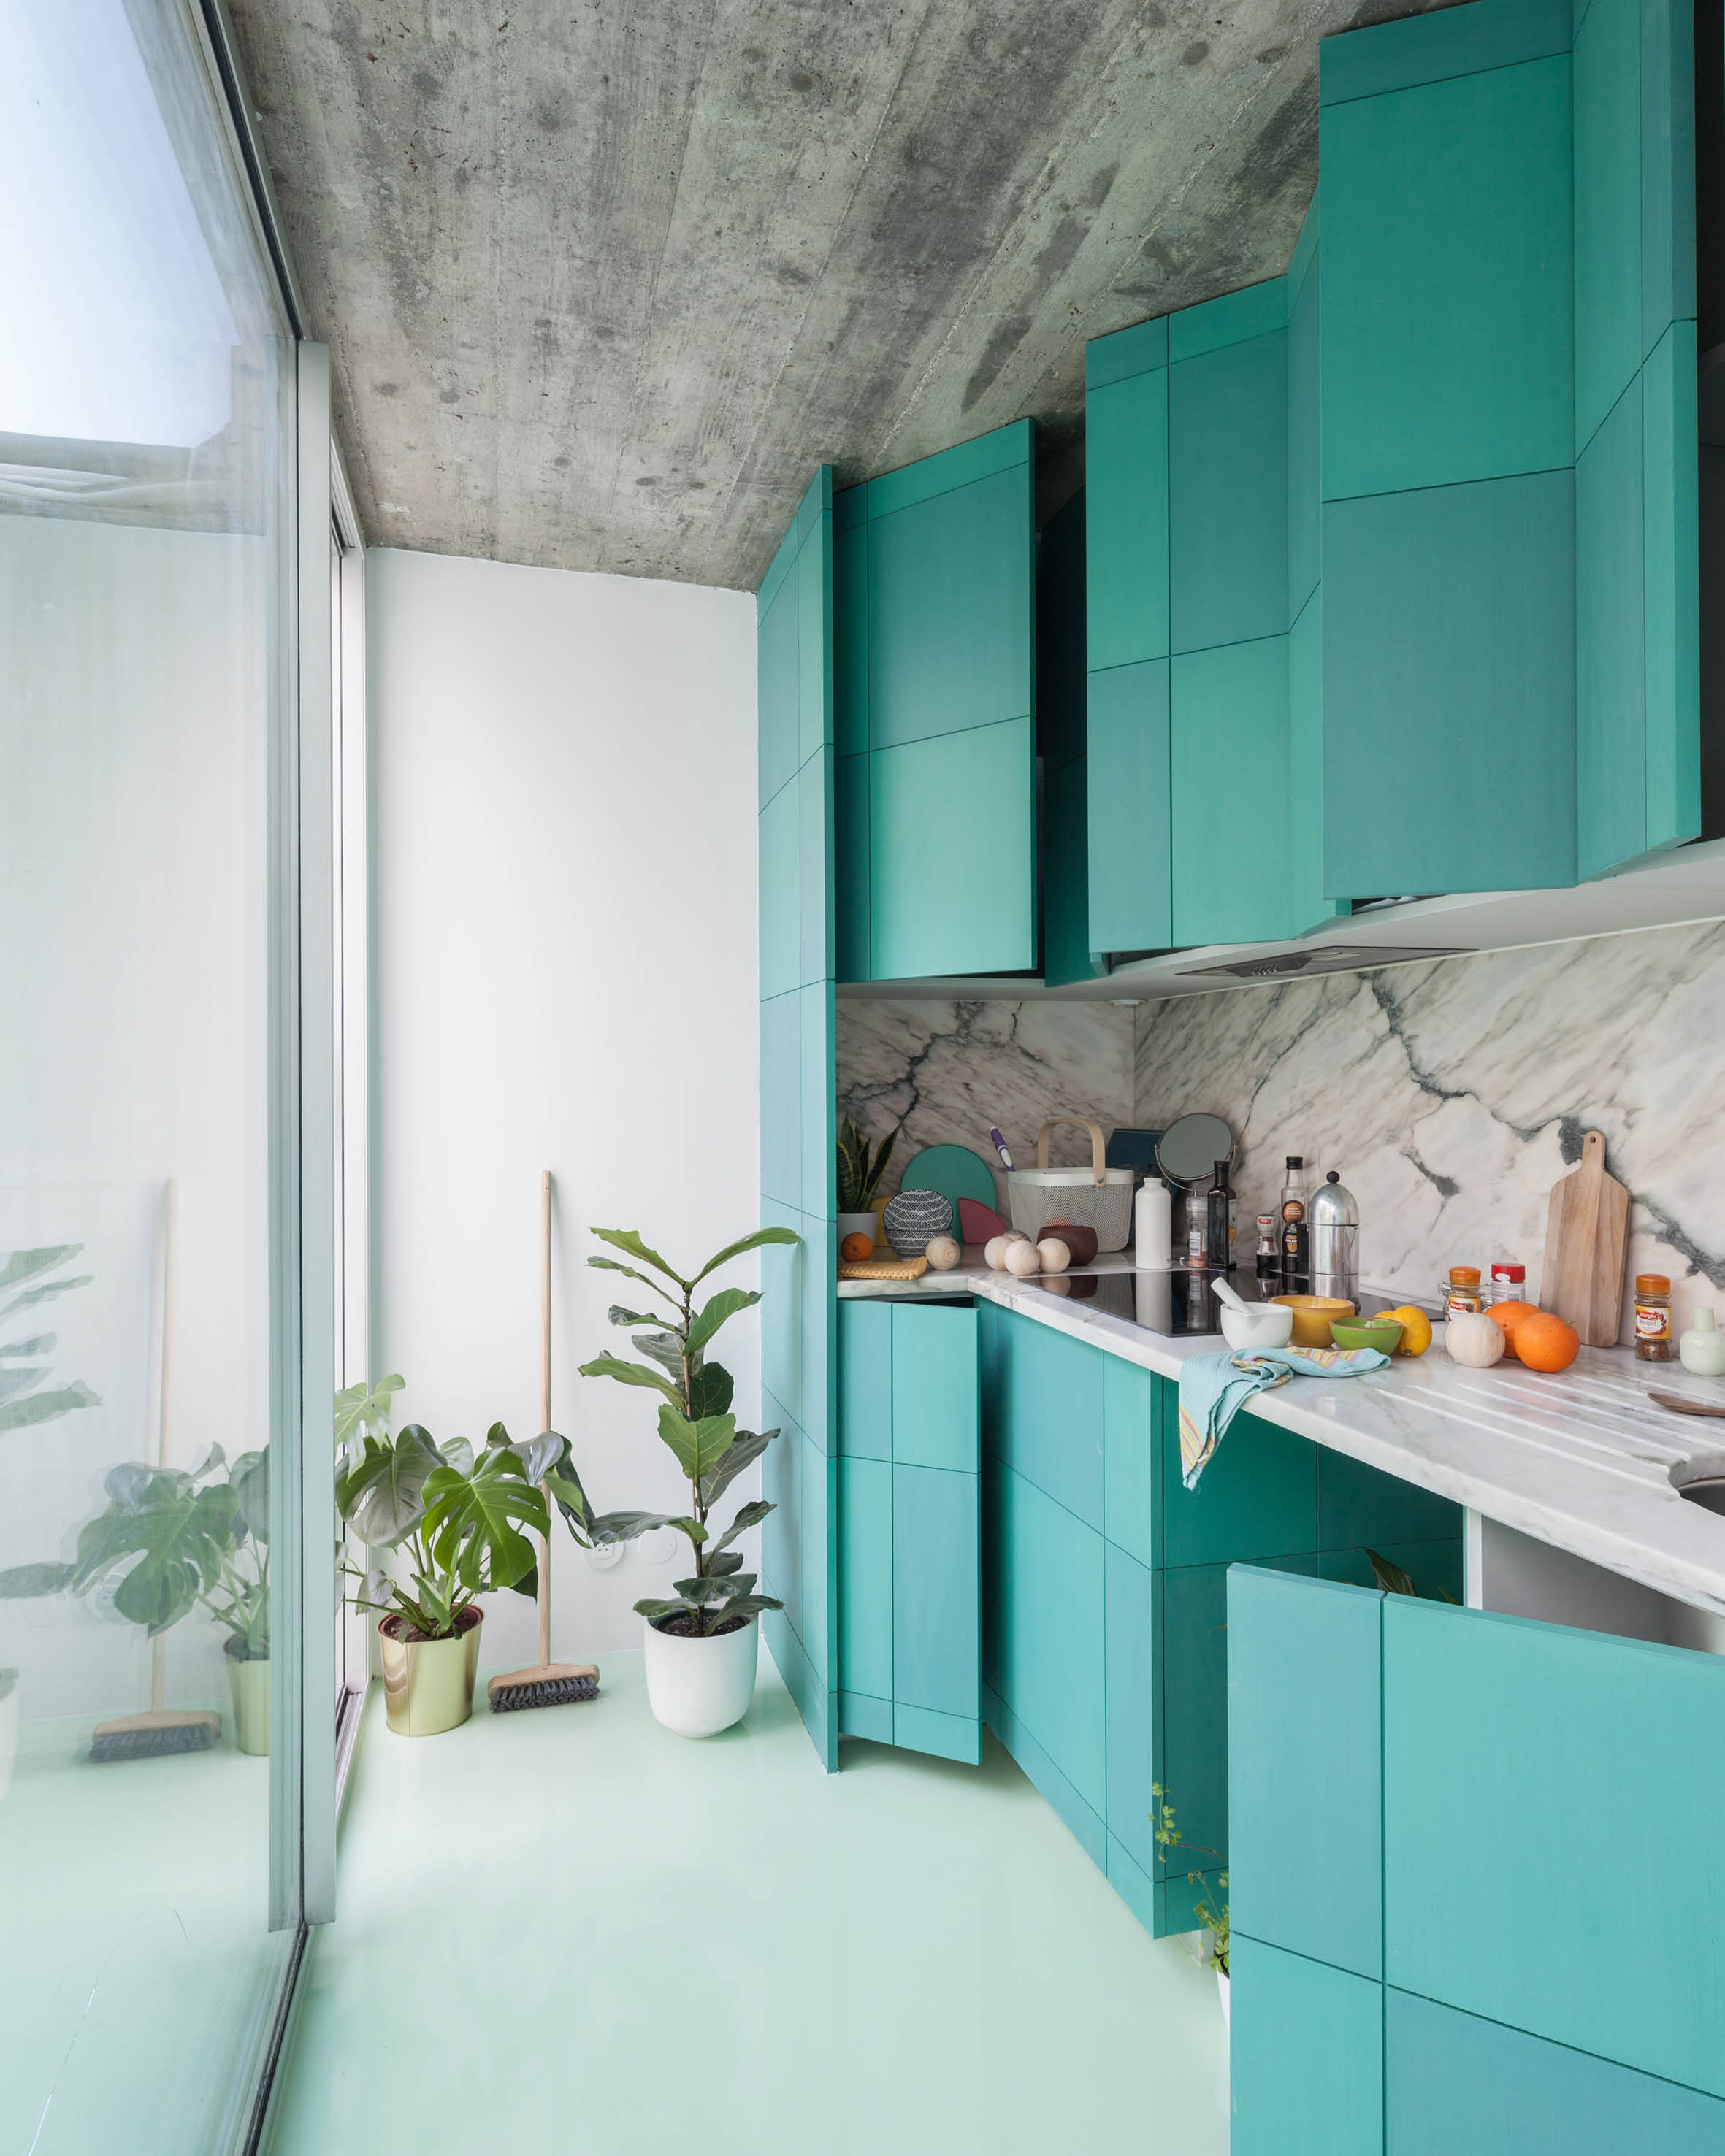 Mint floor and shades of green cabinetry in a kitchen by fala atelier